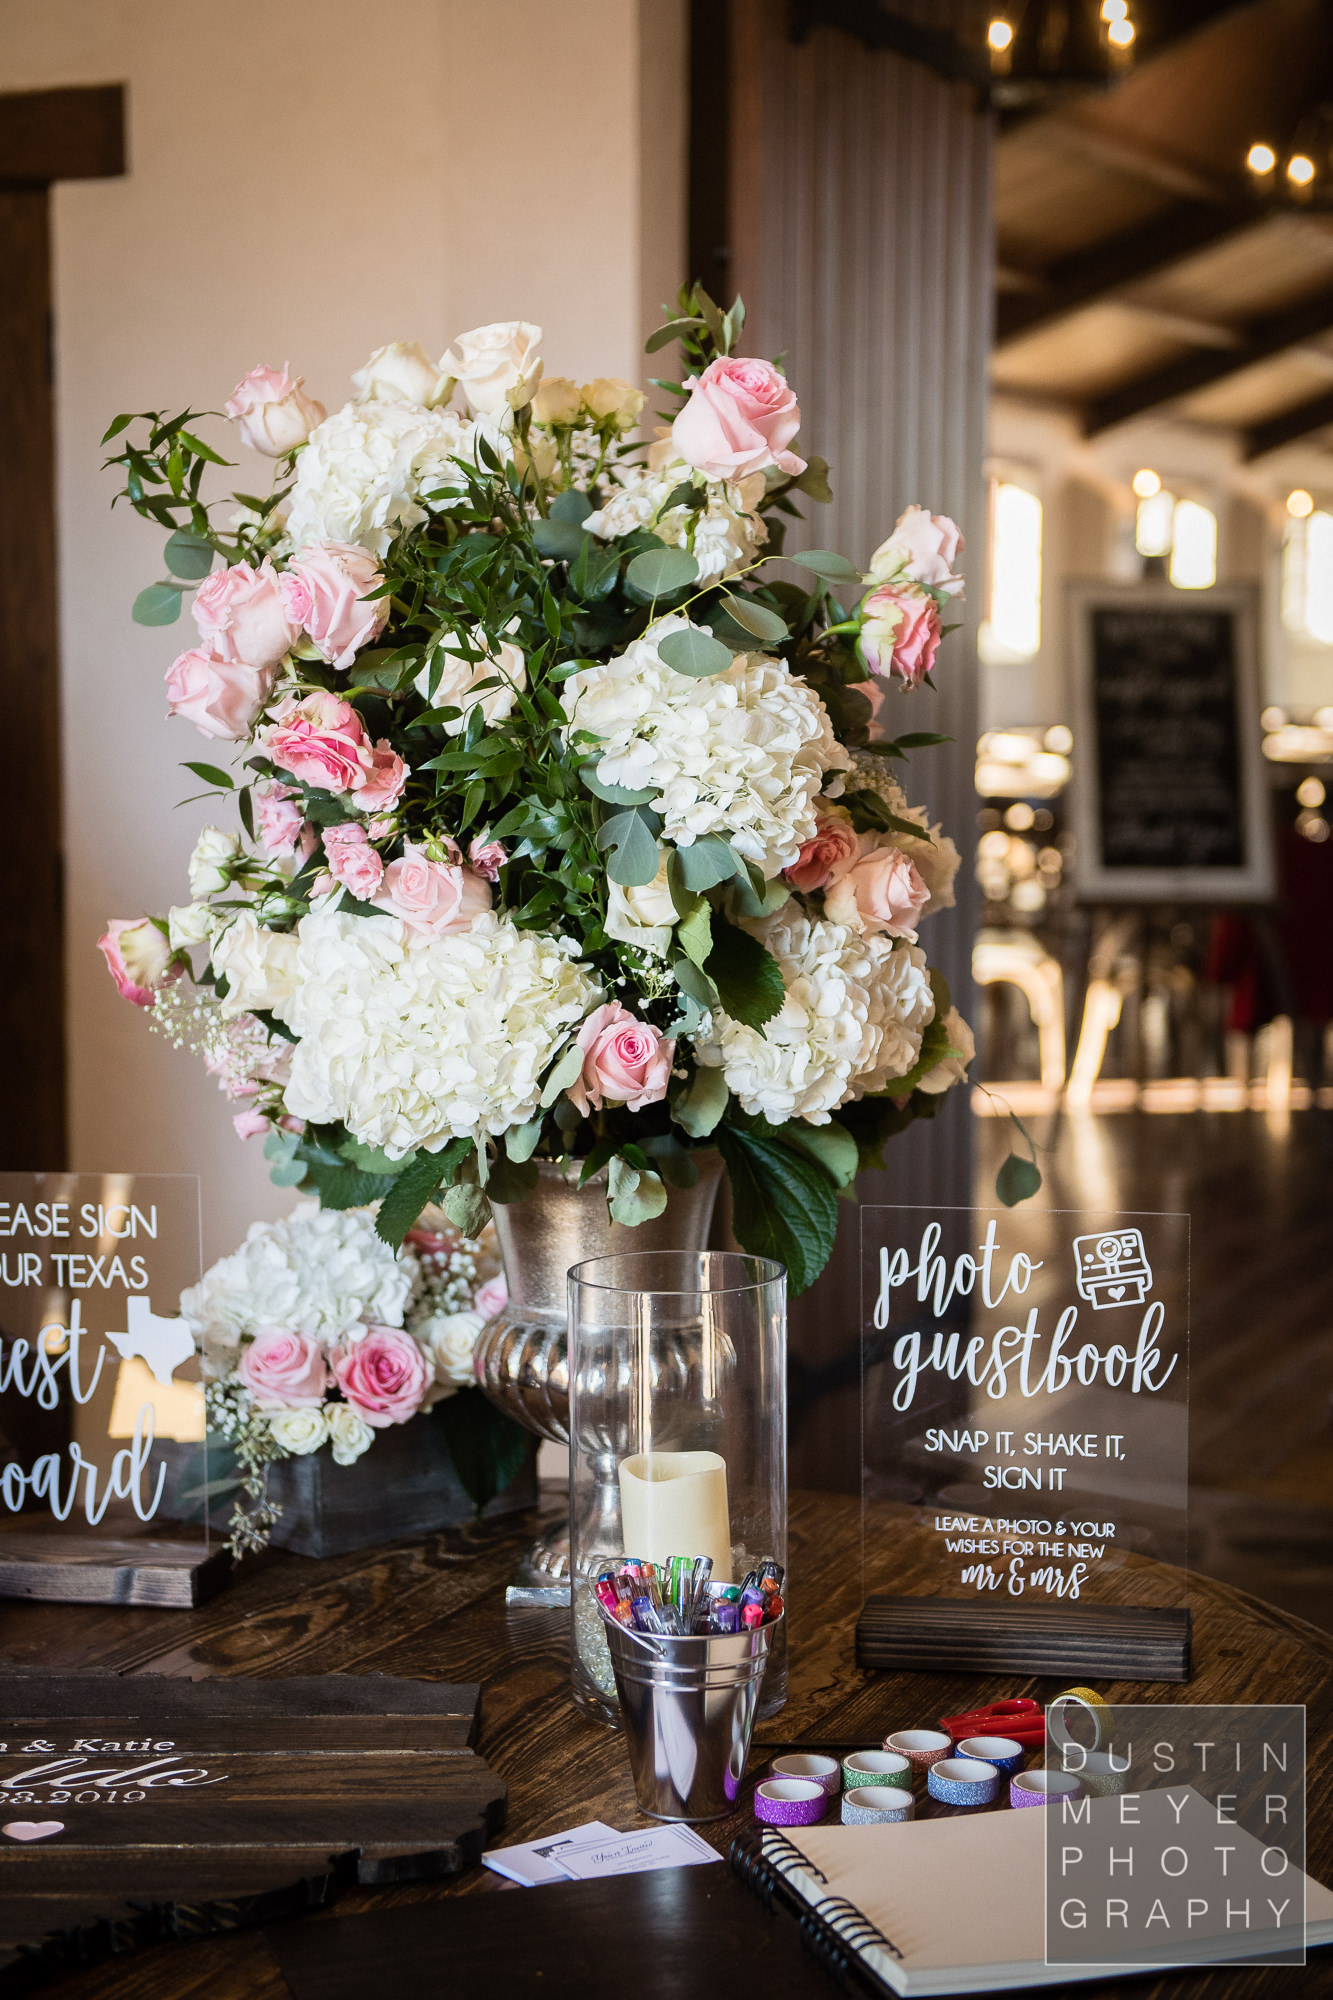 A wedding floral arrangement centerpiece for the ceremony